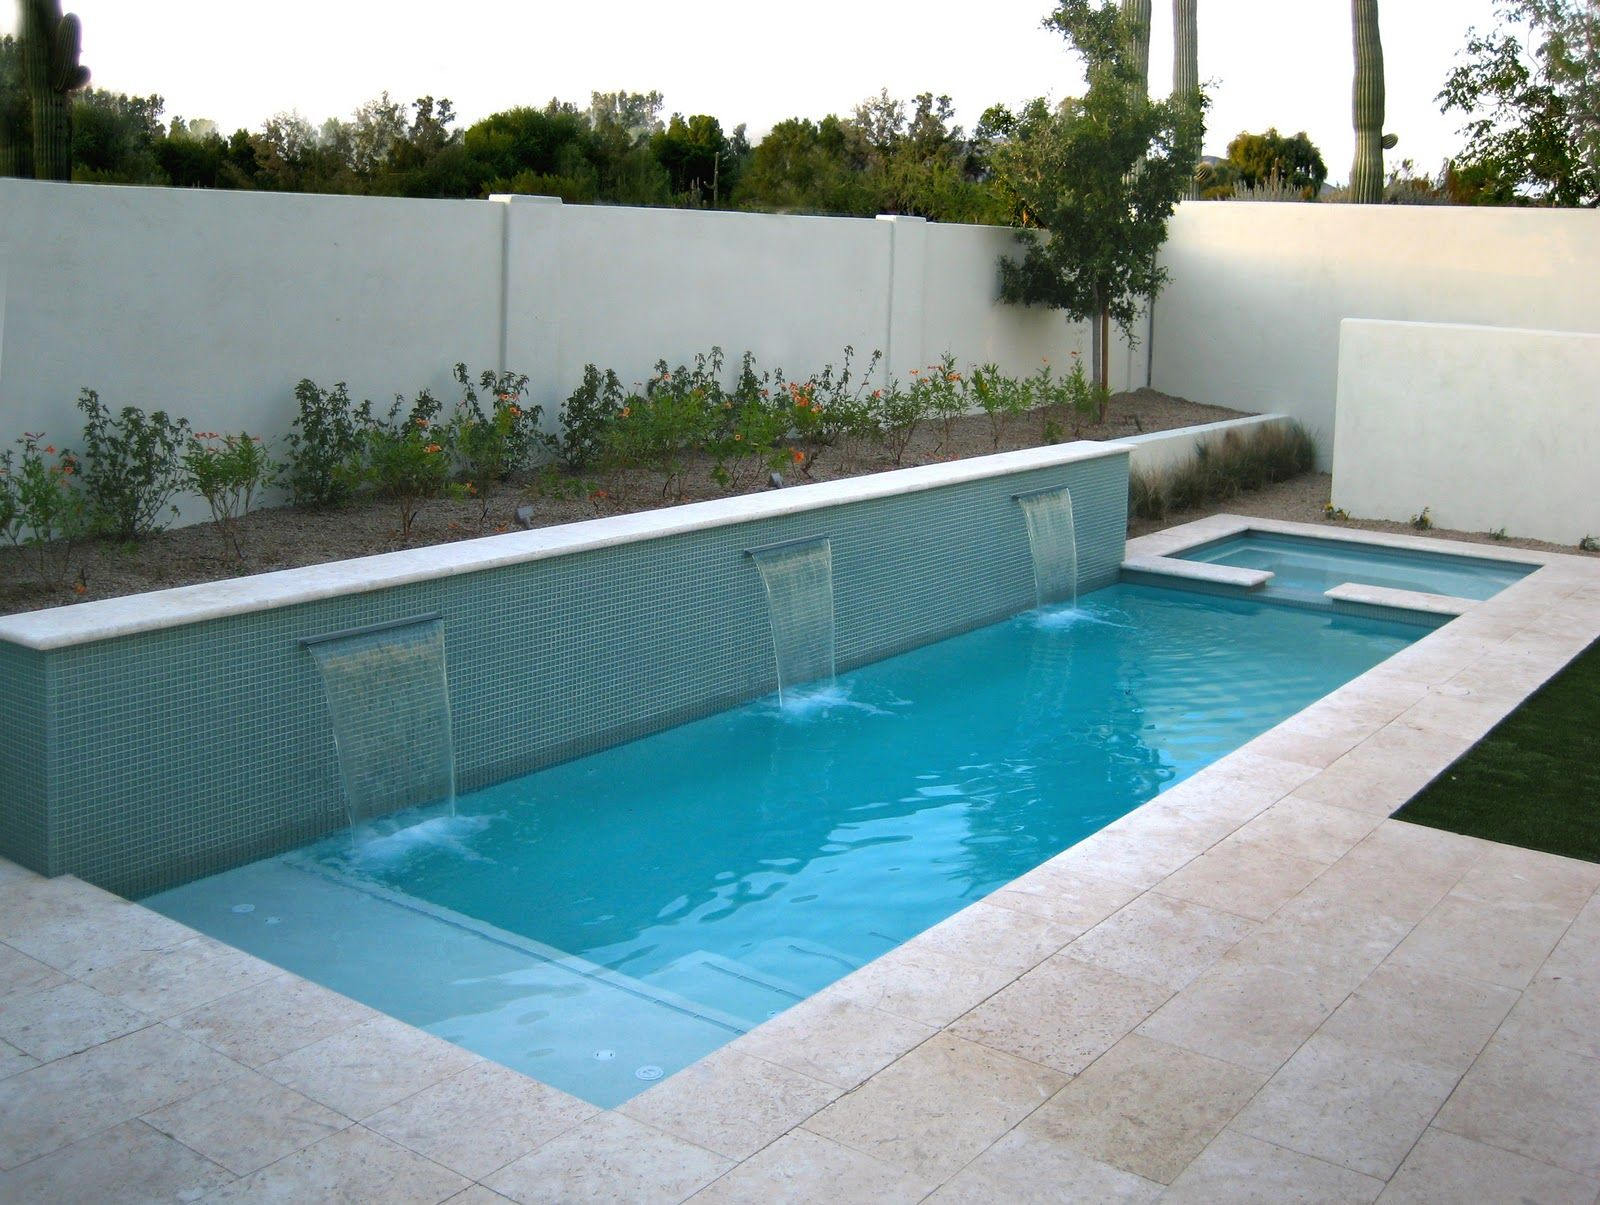 Swimming Pool Designs With Waterfalls Winsome Becker Pool In Small Pool Designs With Waterfalls Ideas